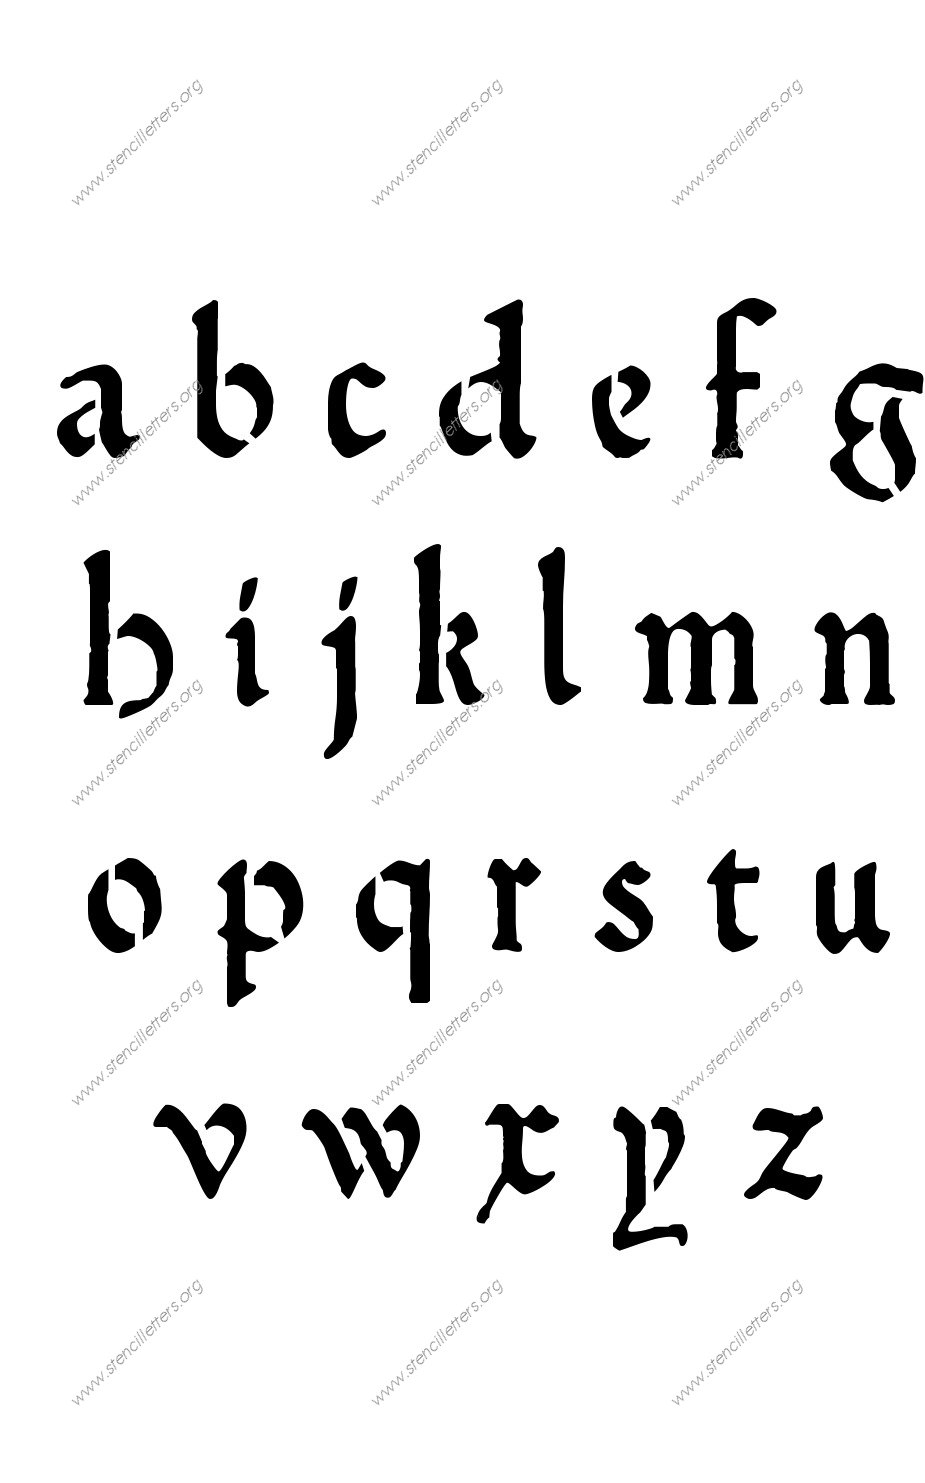 Medieval calligraphy uppercase lowercase letter stencils